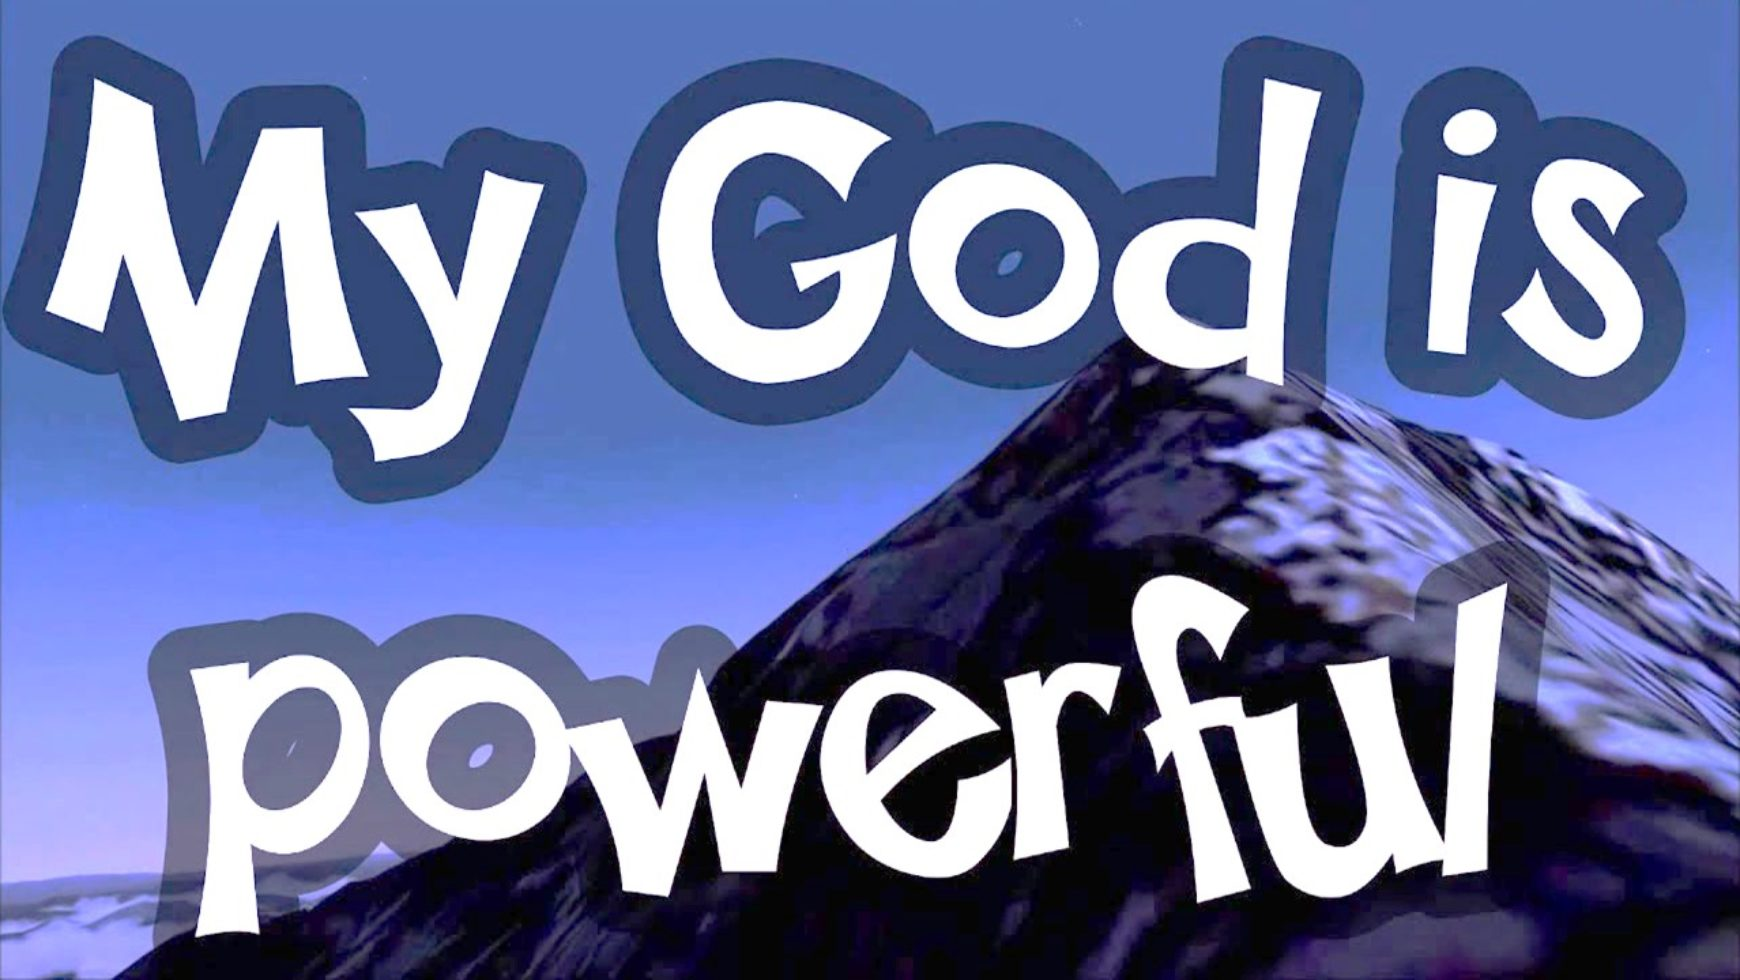 God is powerful